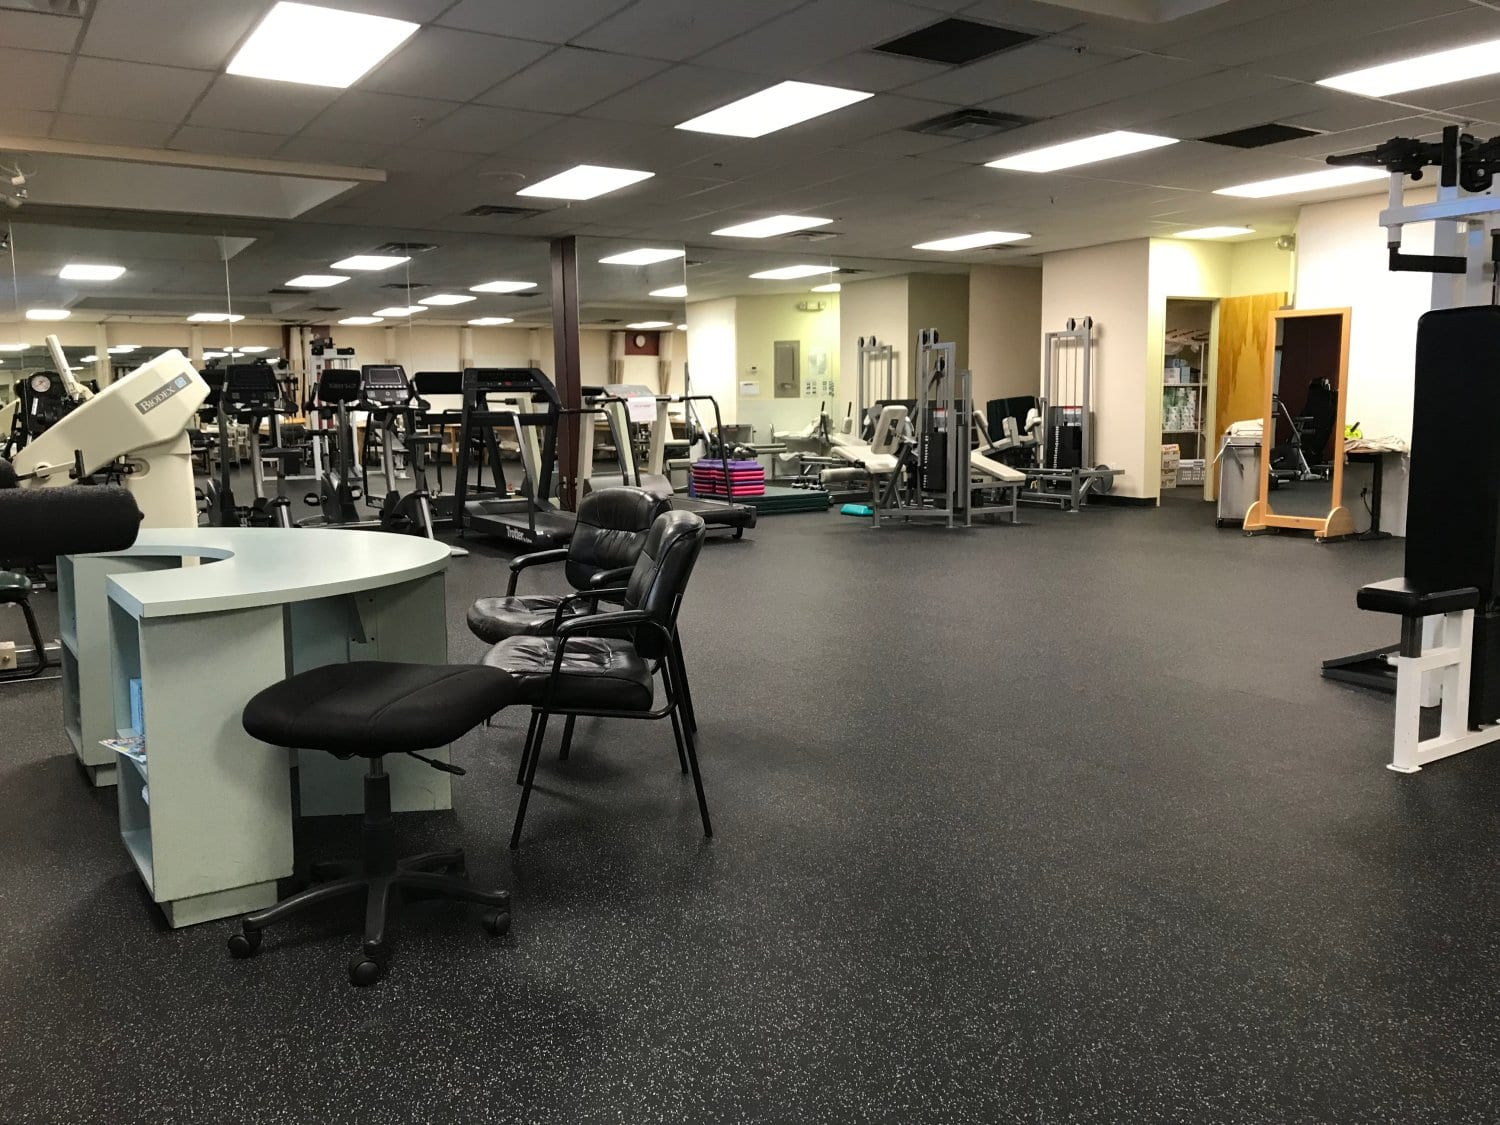 An image of our well maintained physical therapy clinic in Cliffside Park, New Jersey.